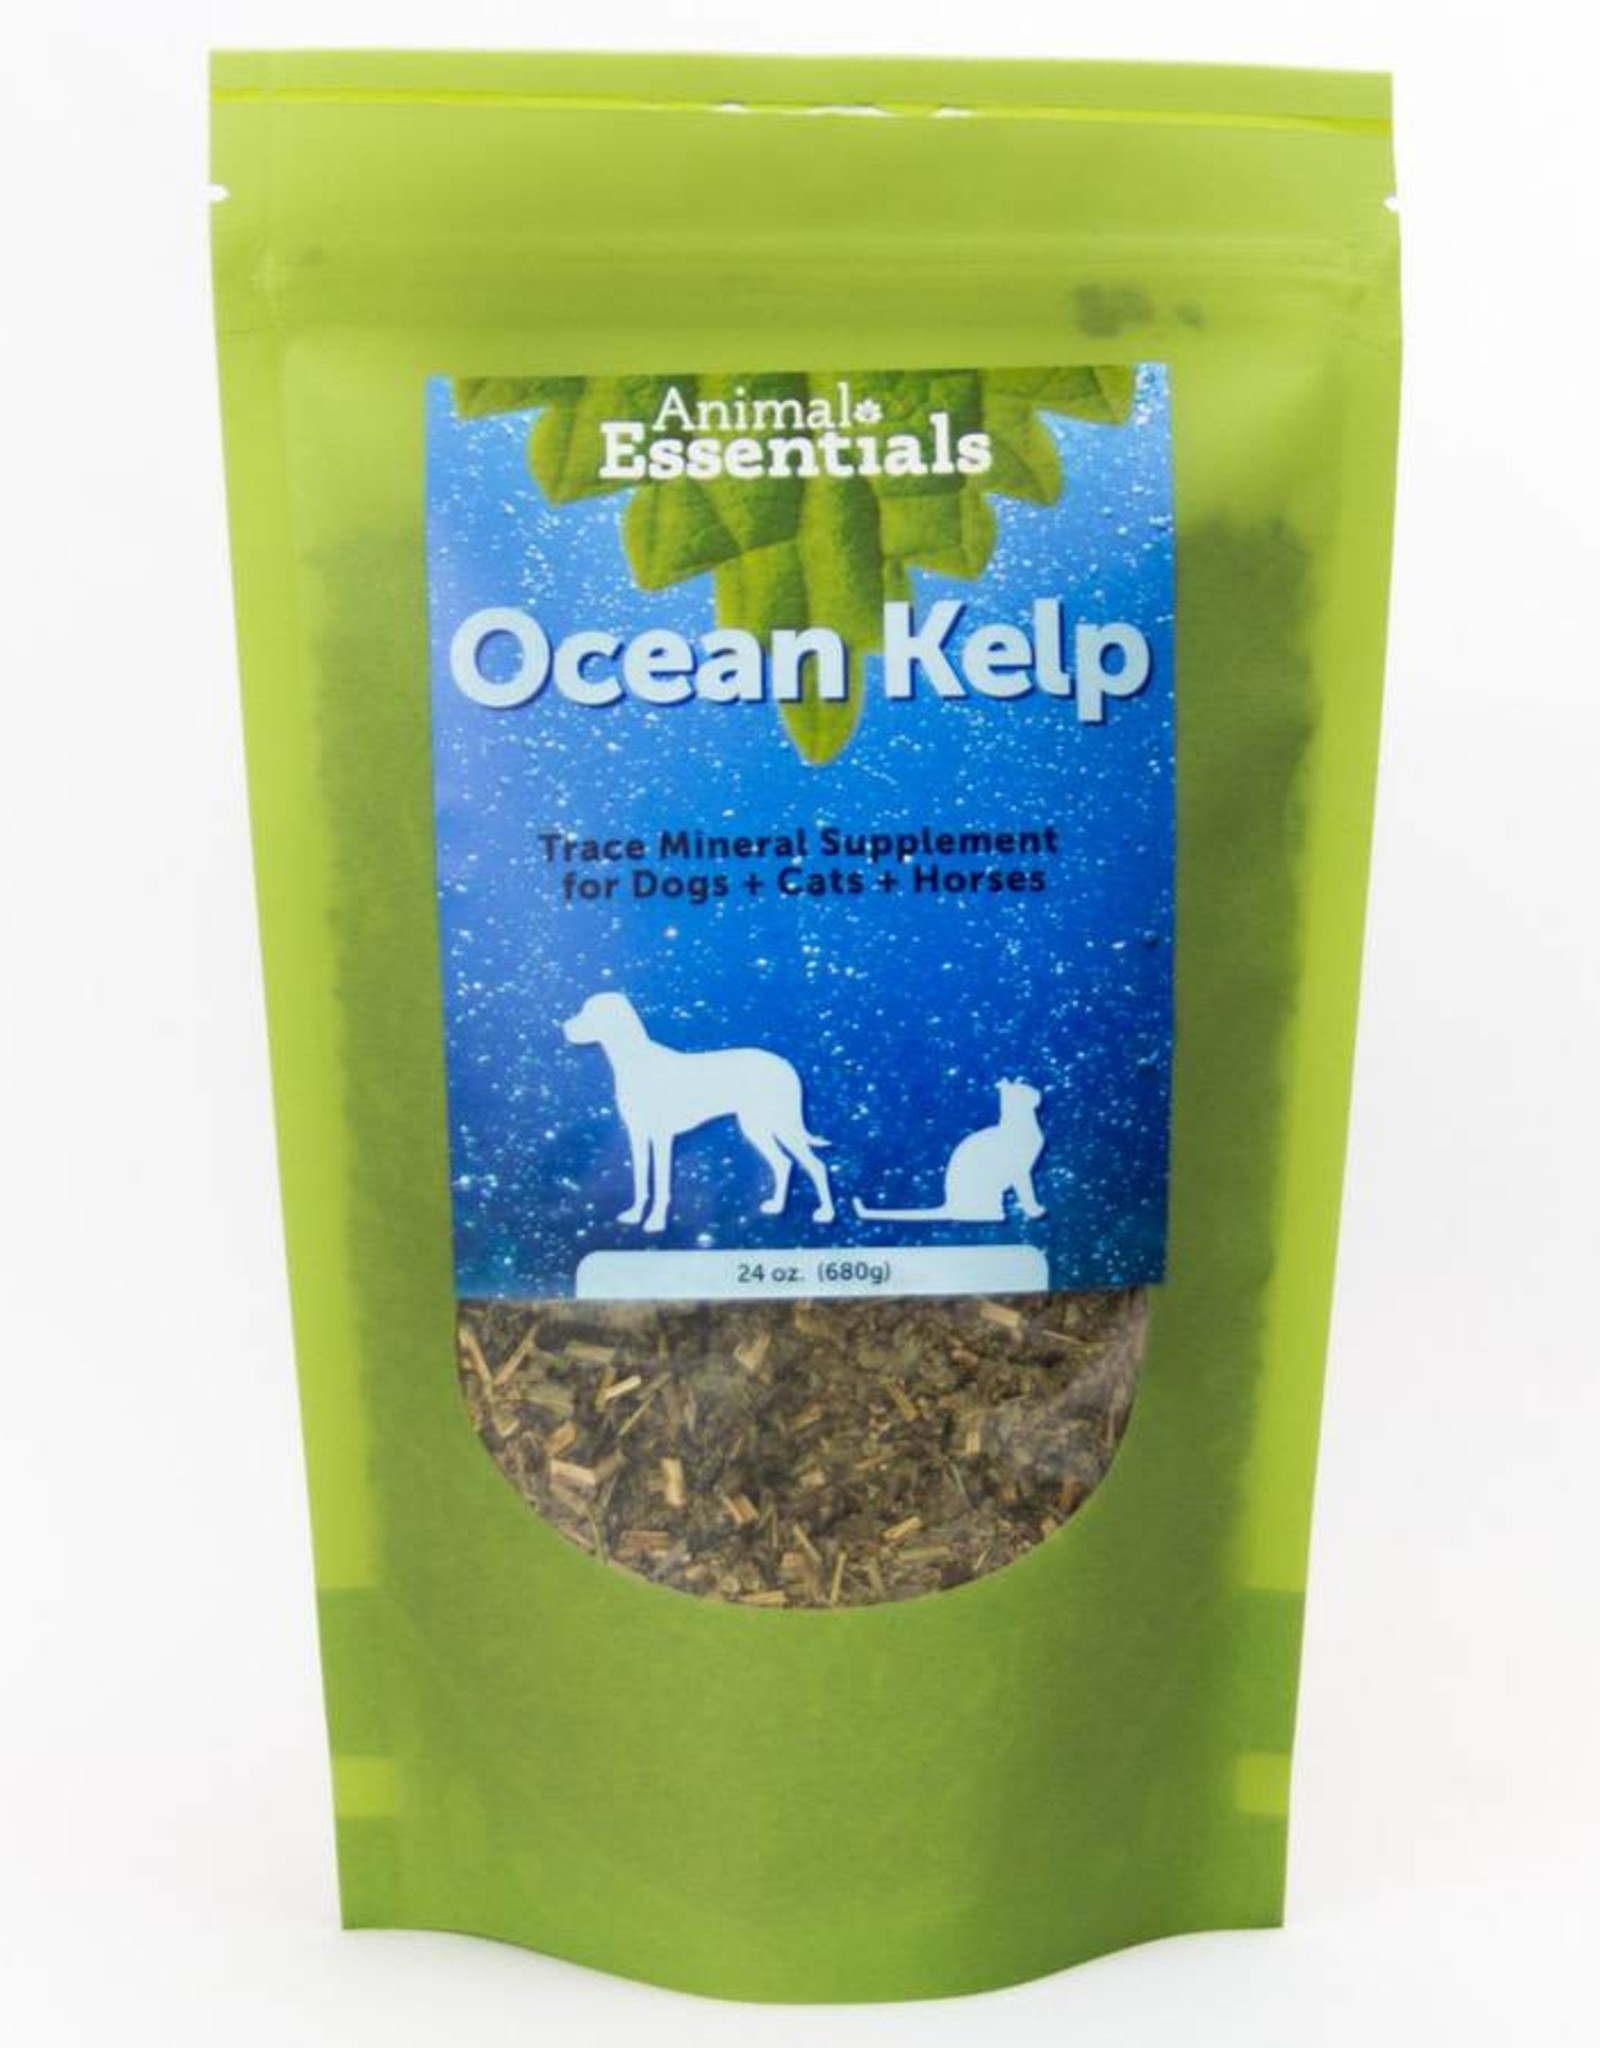 Animal Essentials Animal Essentials Ocean Kelp 24oz